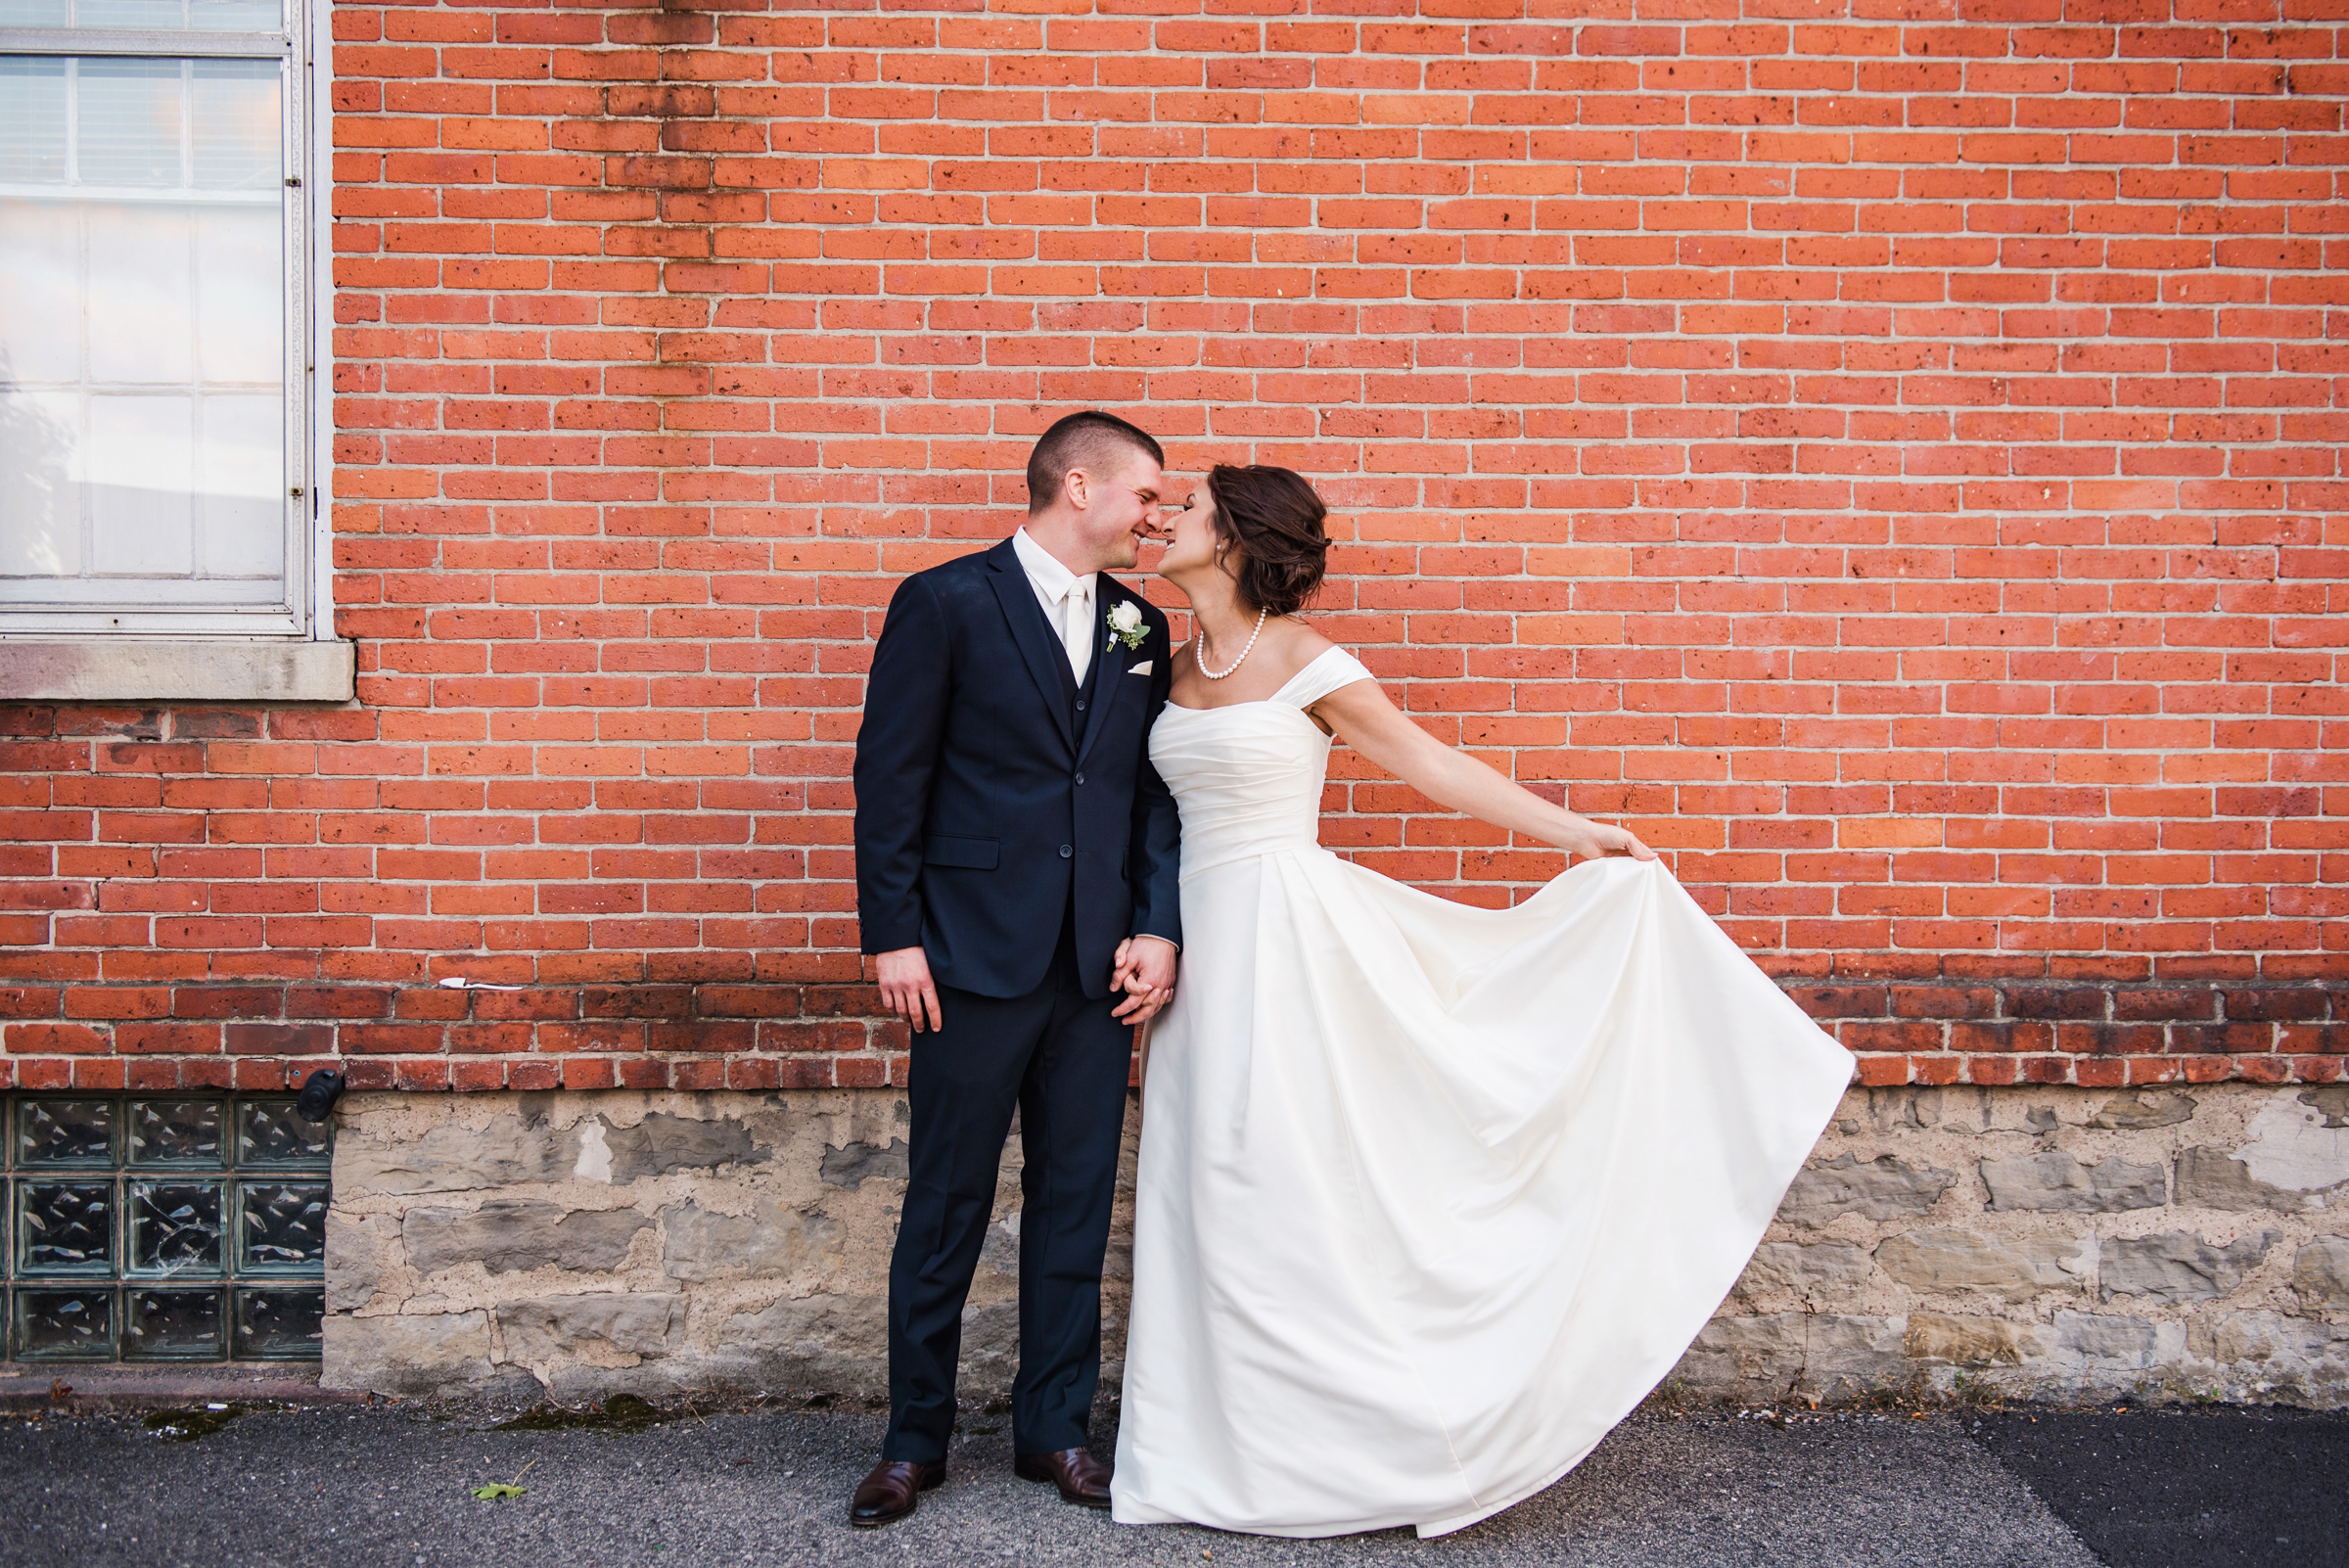 JILL_STUDIO_Wedding_JILL_STUDIO_Rochester_NY_Photographer_25-DSC_9328.jpg